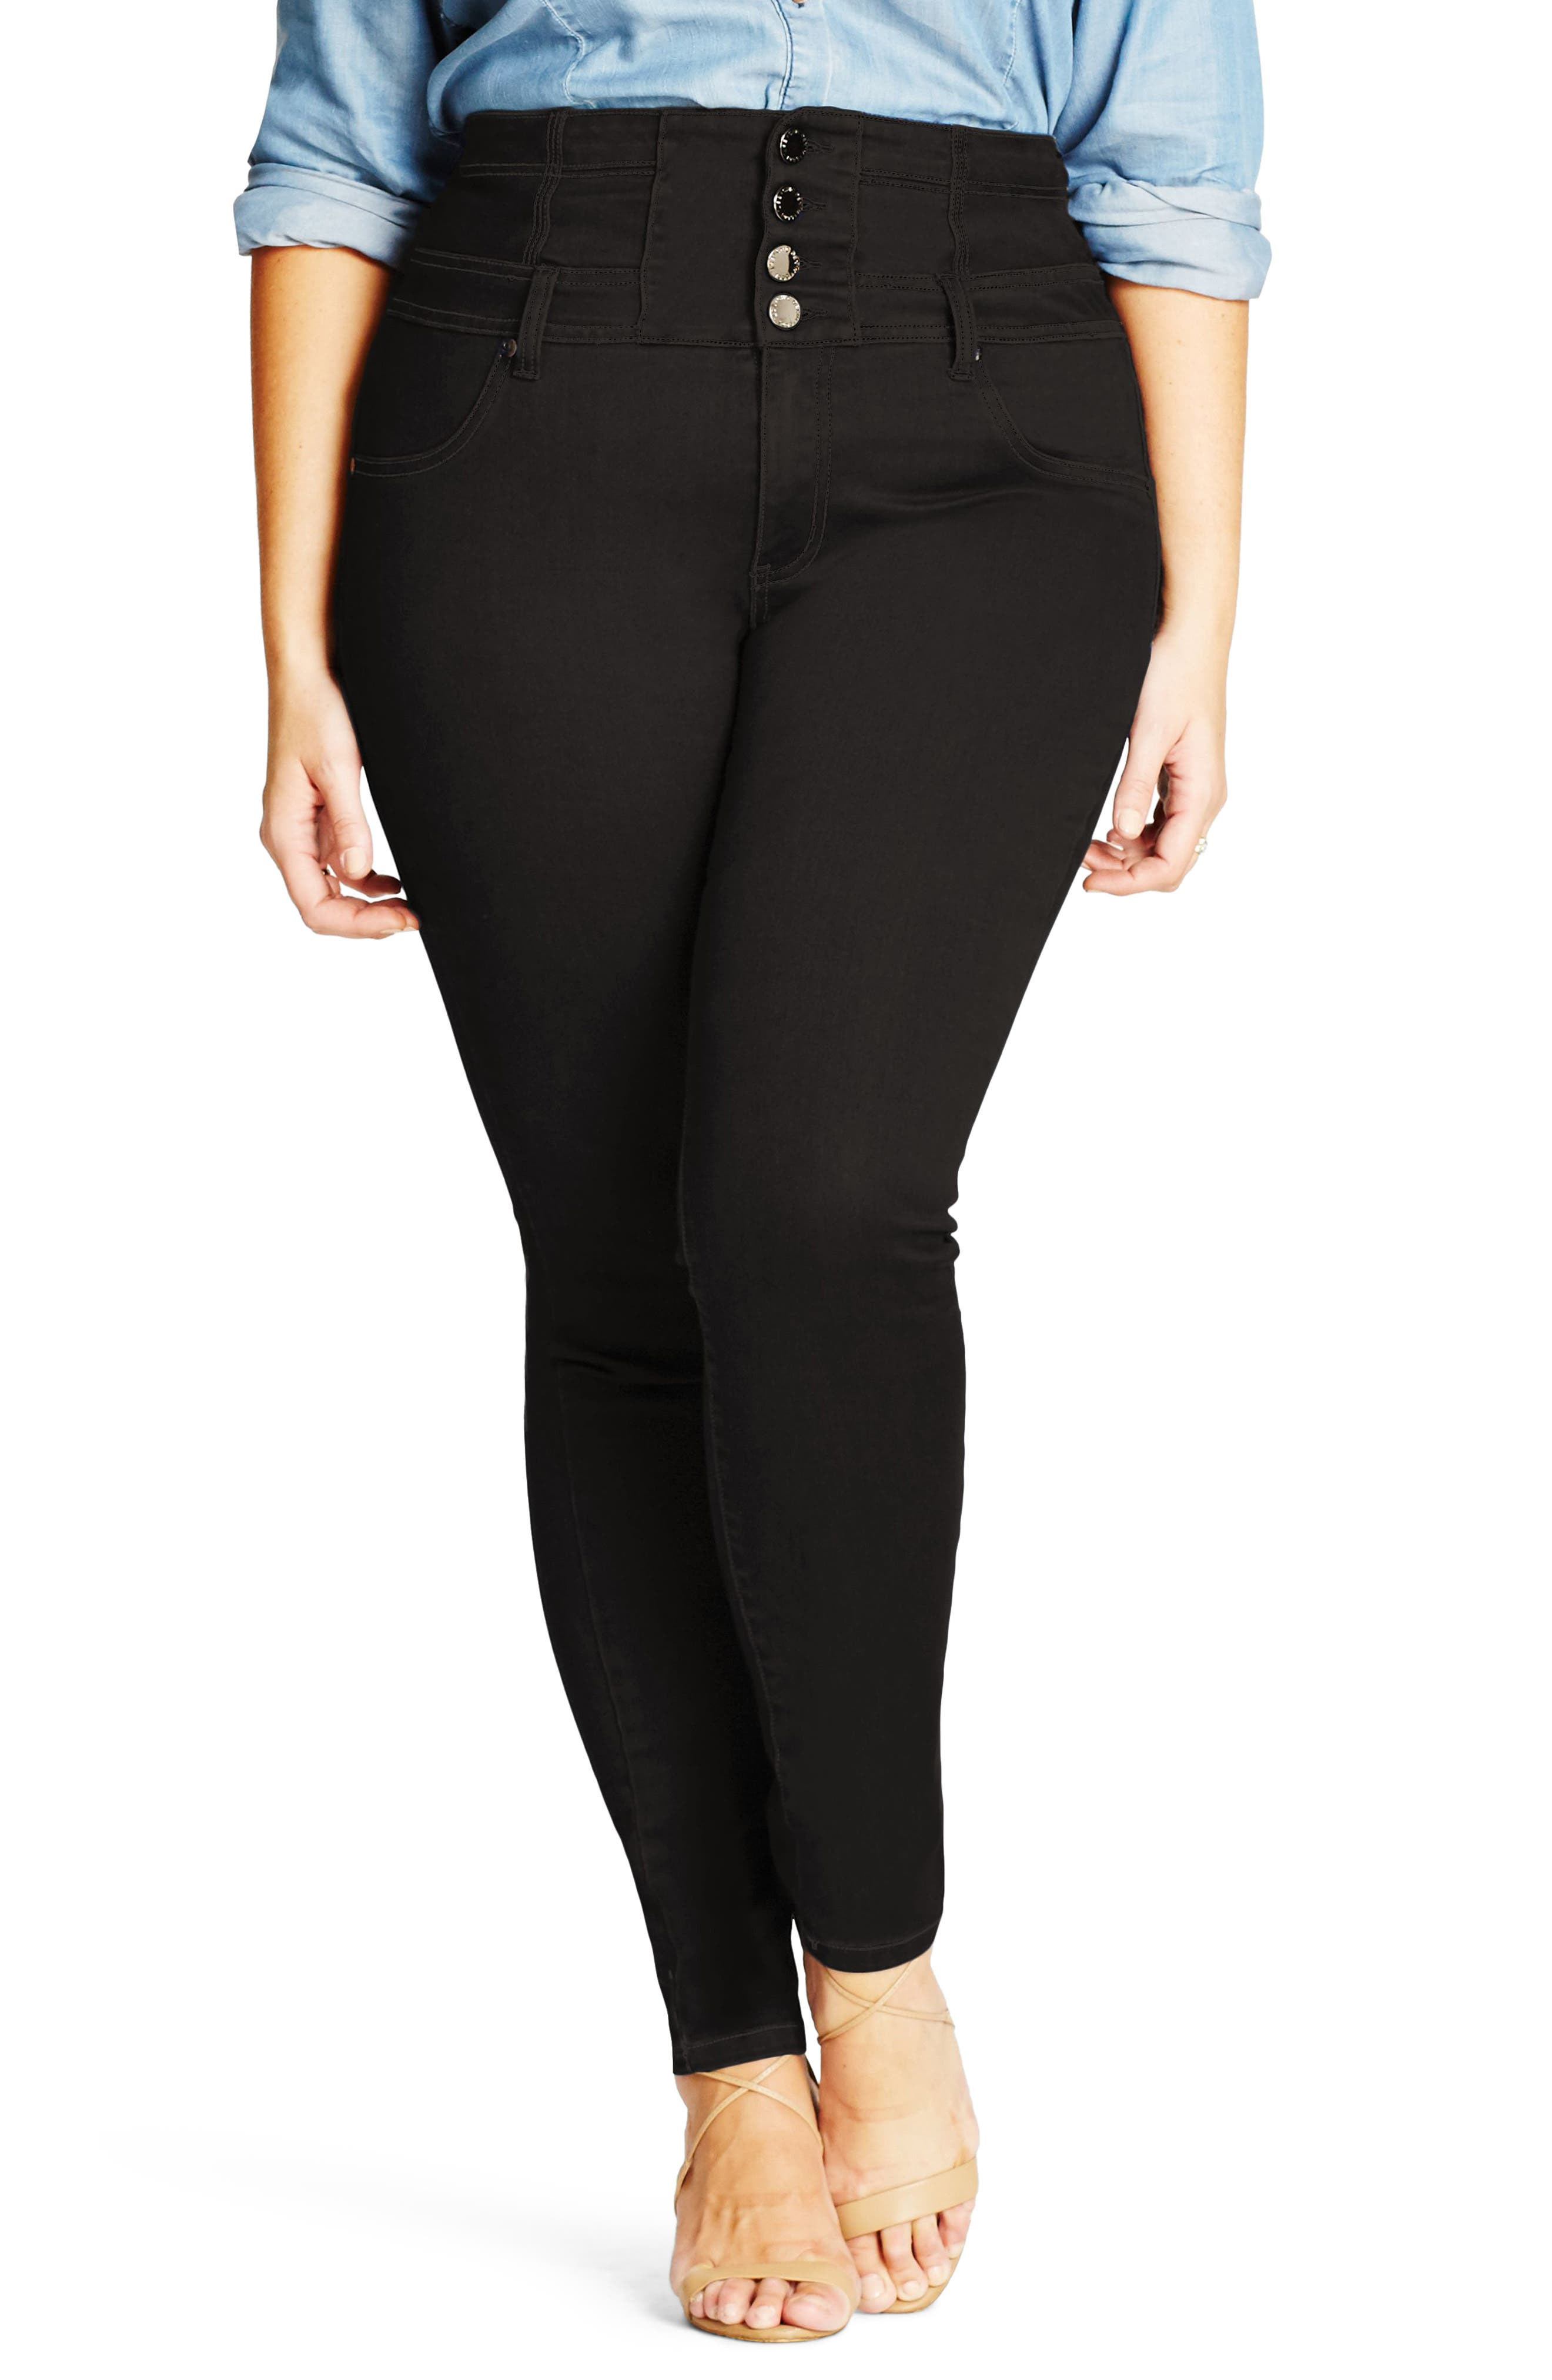 Alternate Image 1 Selected - City Chic Harley Corset Skinny Jeans (Plus Size)